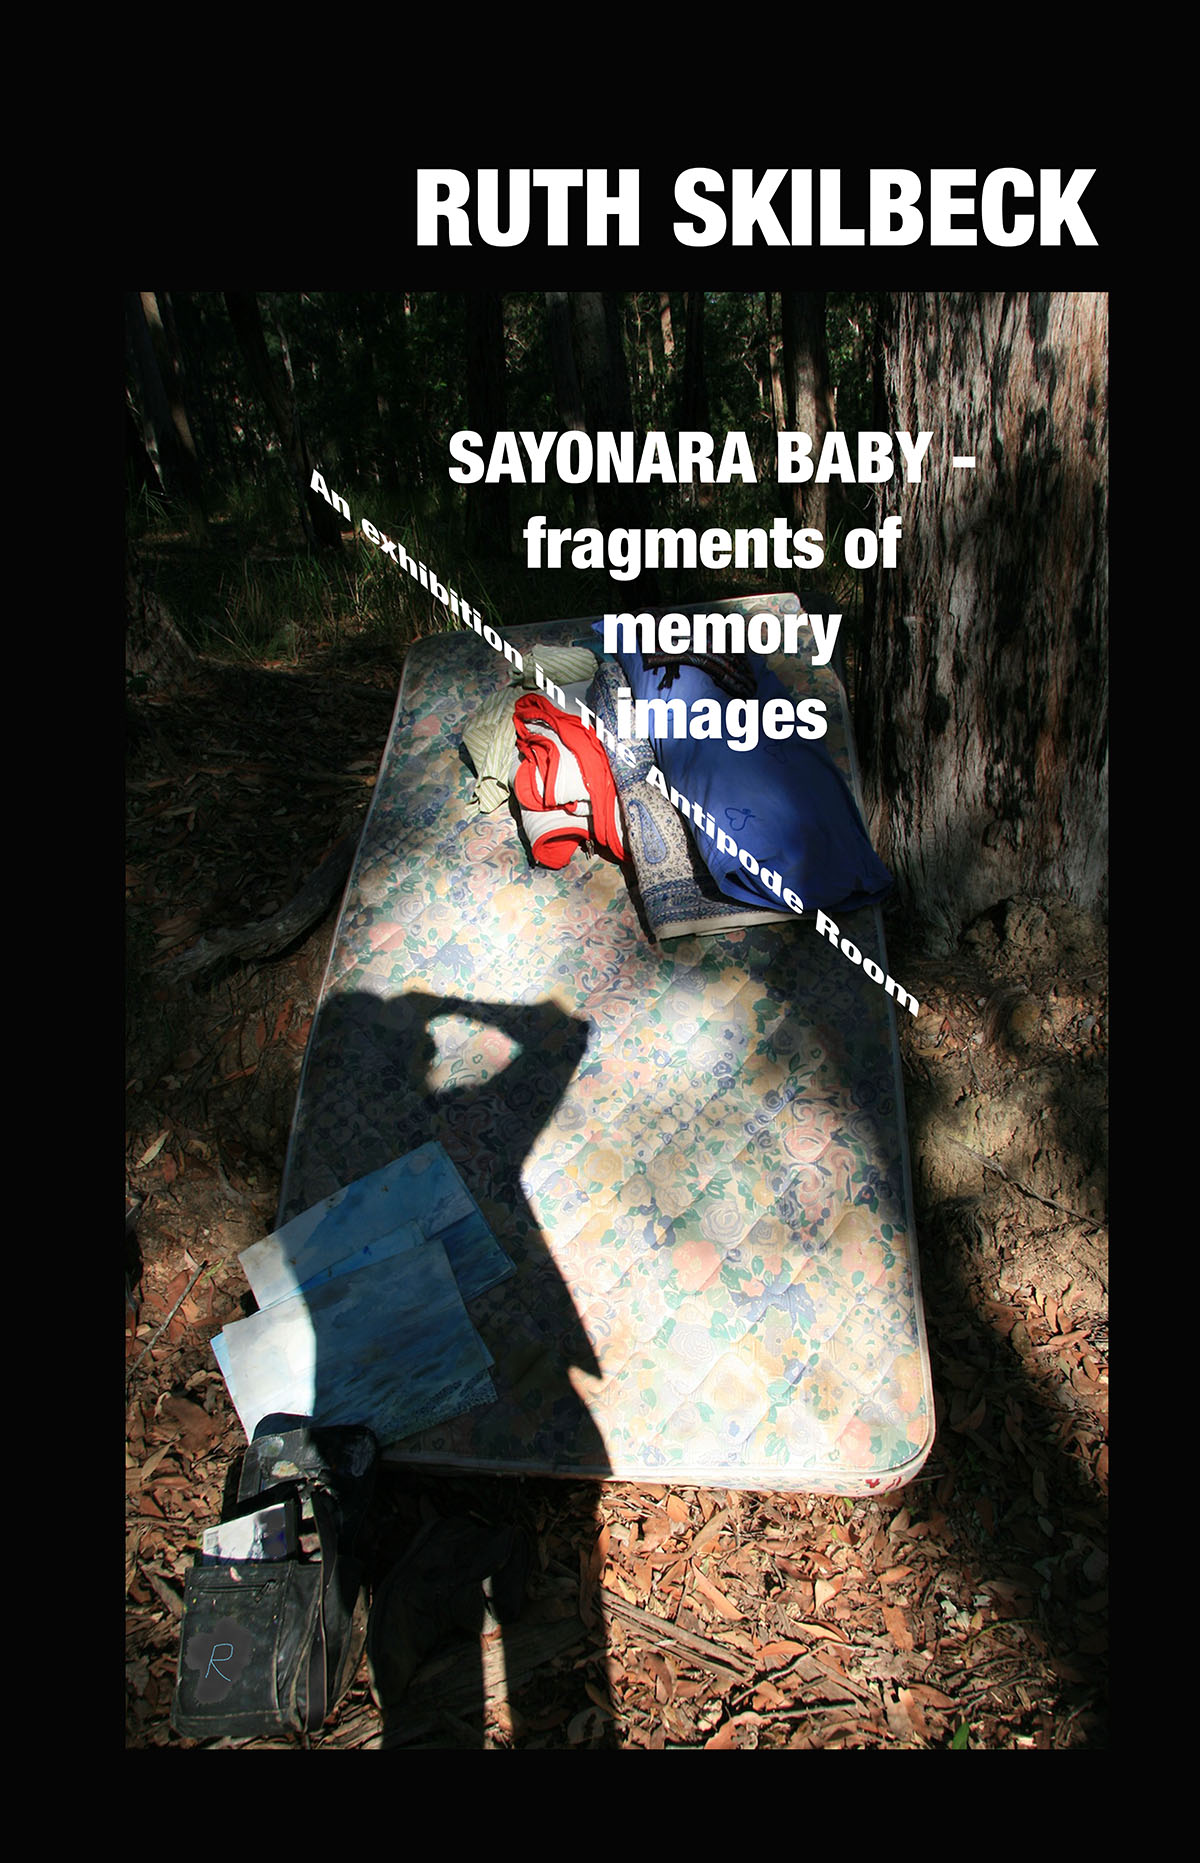 Sayonara Baby - fragments of memory images - A book of photo art works by Ruth Skilbeck, and short excerpts from psychological fugue fiction novels in her Australian Fugue Series, including a poem. The art series responds to a mysterious series of pixel concrete artworks in The Antipode Room and is presented in the form of a catalogue of an exhibition in the new gallery space The Antipode Room at the (fictional) Ruby Love Gallery, in London.ISBN: 9780648299875 (ebook-pdf)38 pageshttps://www.borderstreambooks.com.au